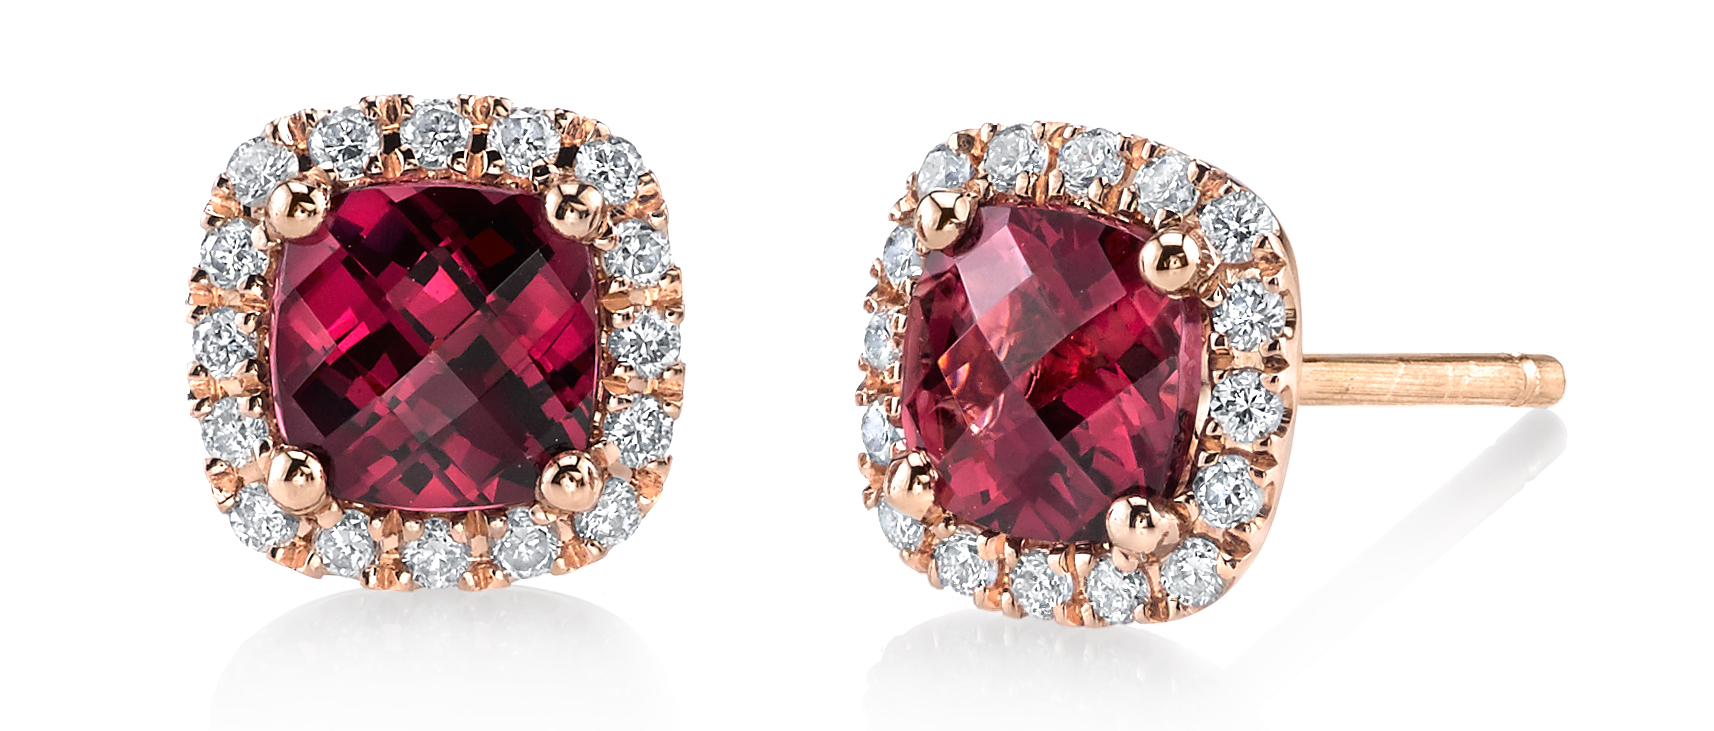 Sylvie Collection garnet stud earrings | JCK On Your Market